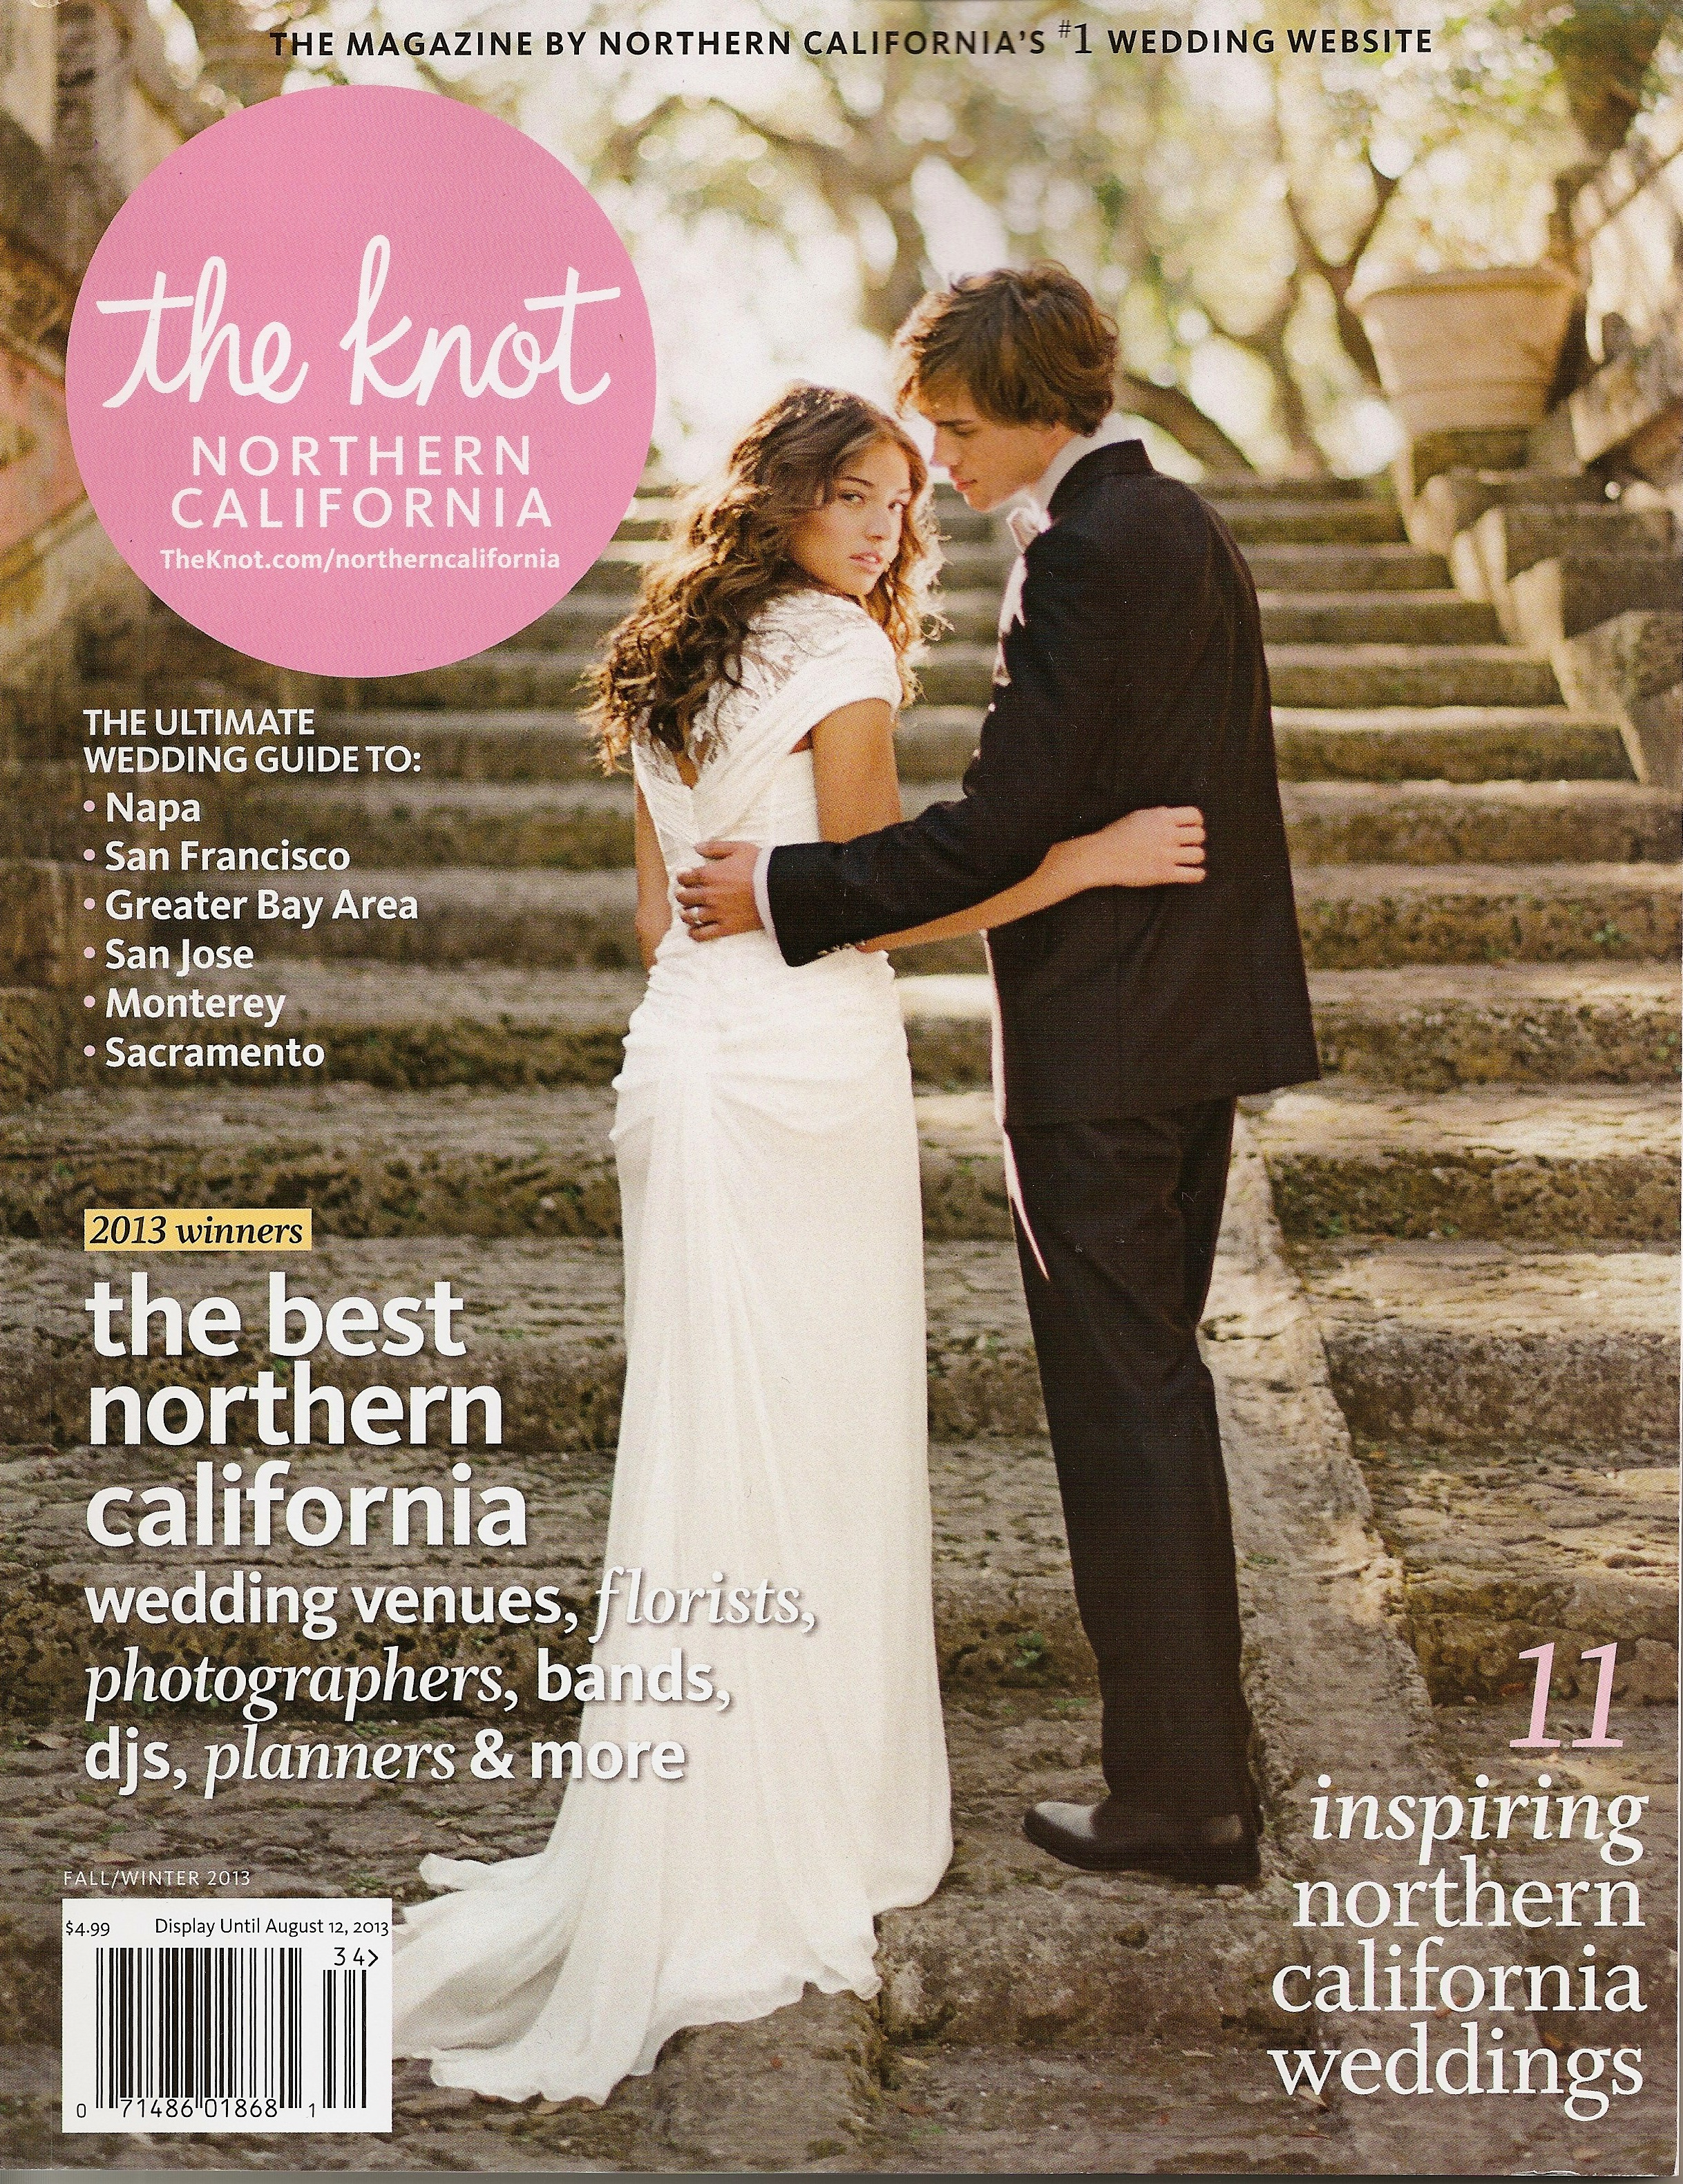 The Knot Nothern California Fall/ Winter 2013